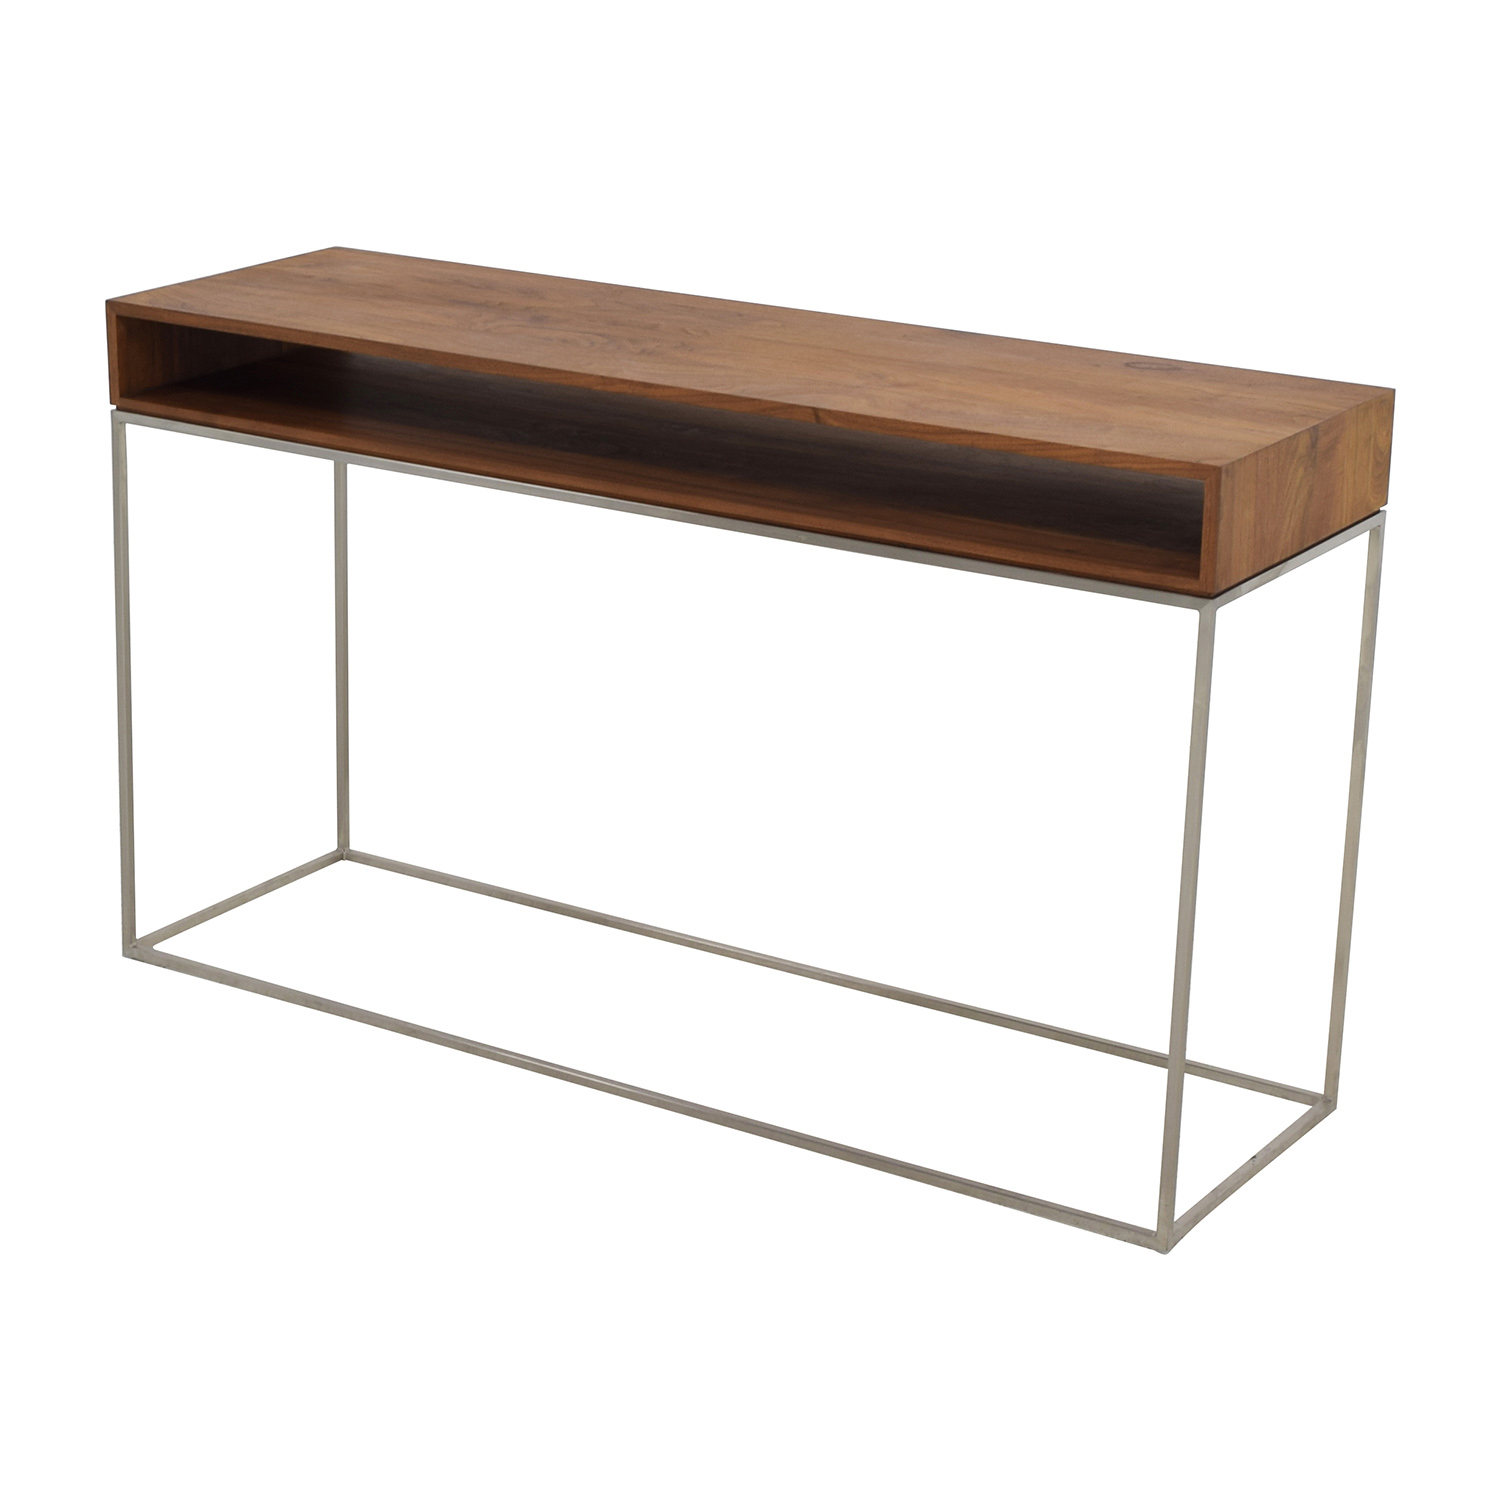 ... CB2 CB2 Wood And Metal Frame Console Table Brown ...